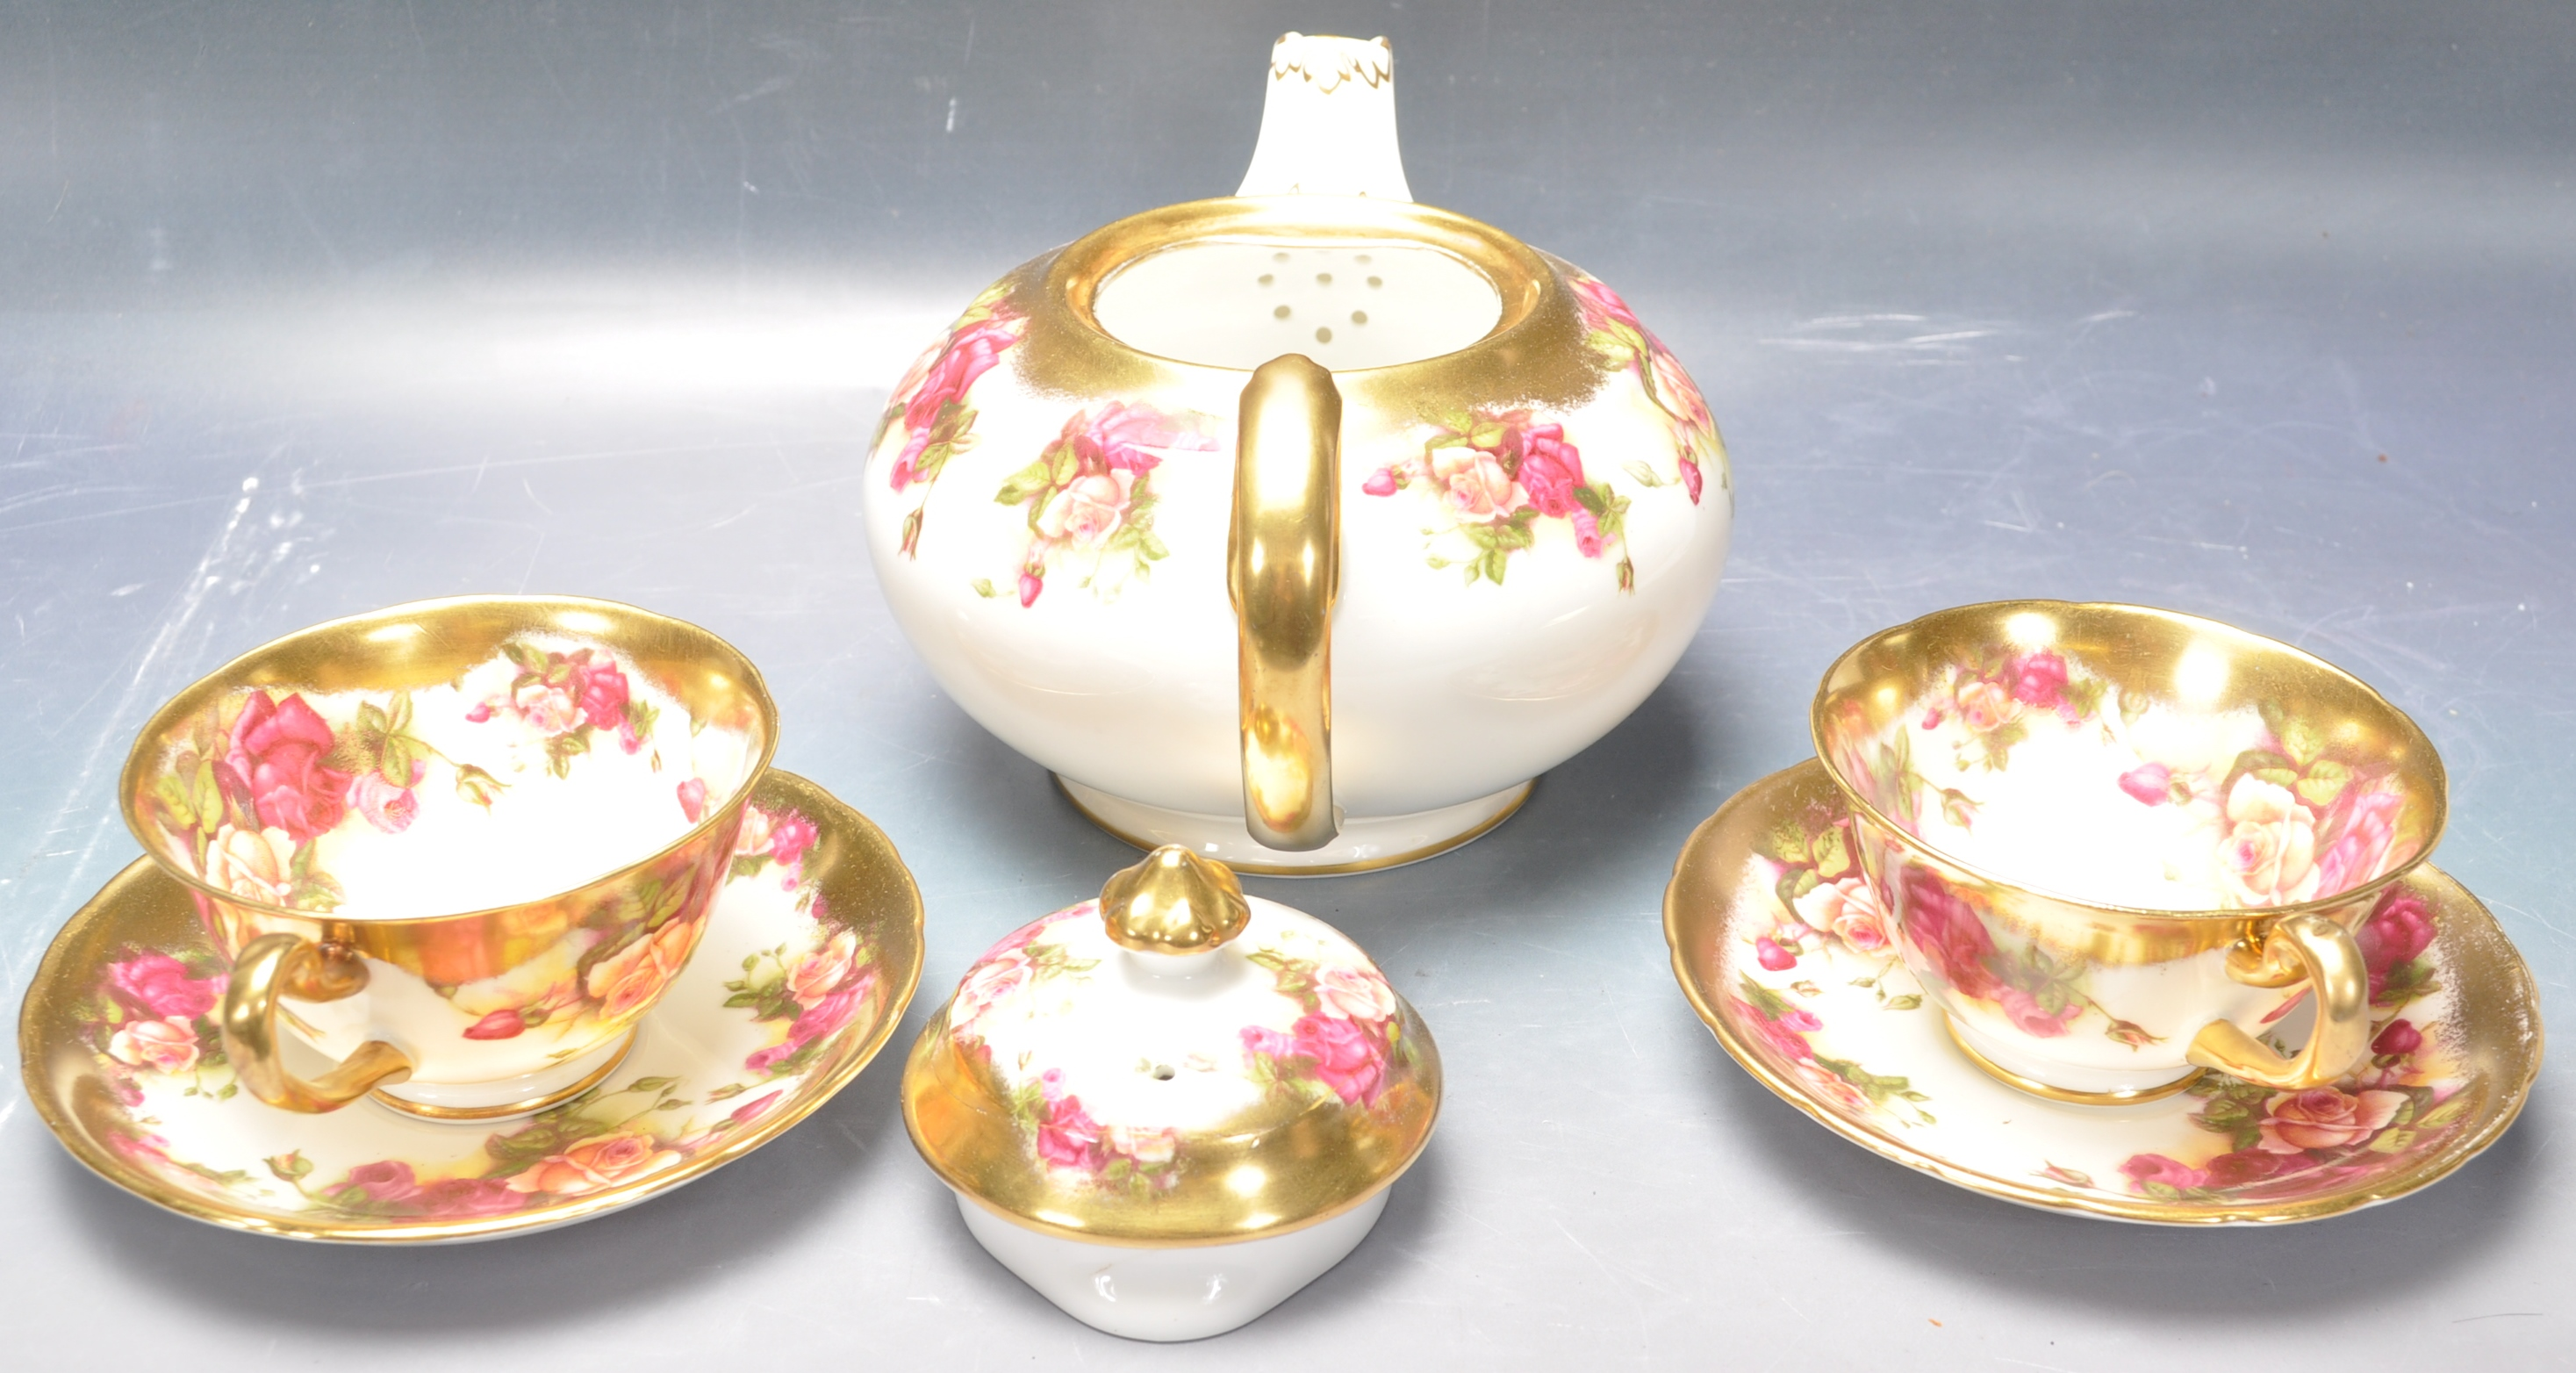 COLLECTION OF 20TH CENTURY ROYAL CHELSEA ENGLISH ROSE CHINA - Image 2 of 7